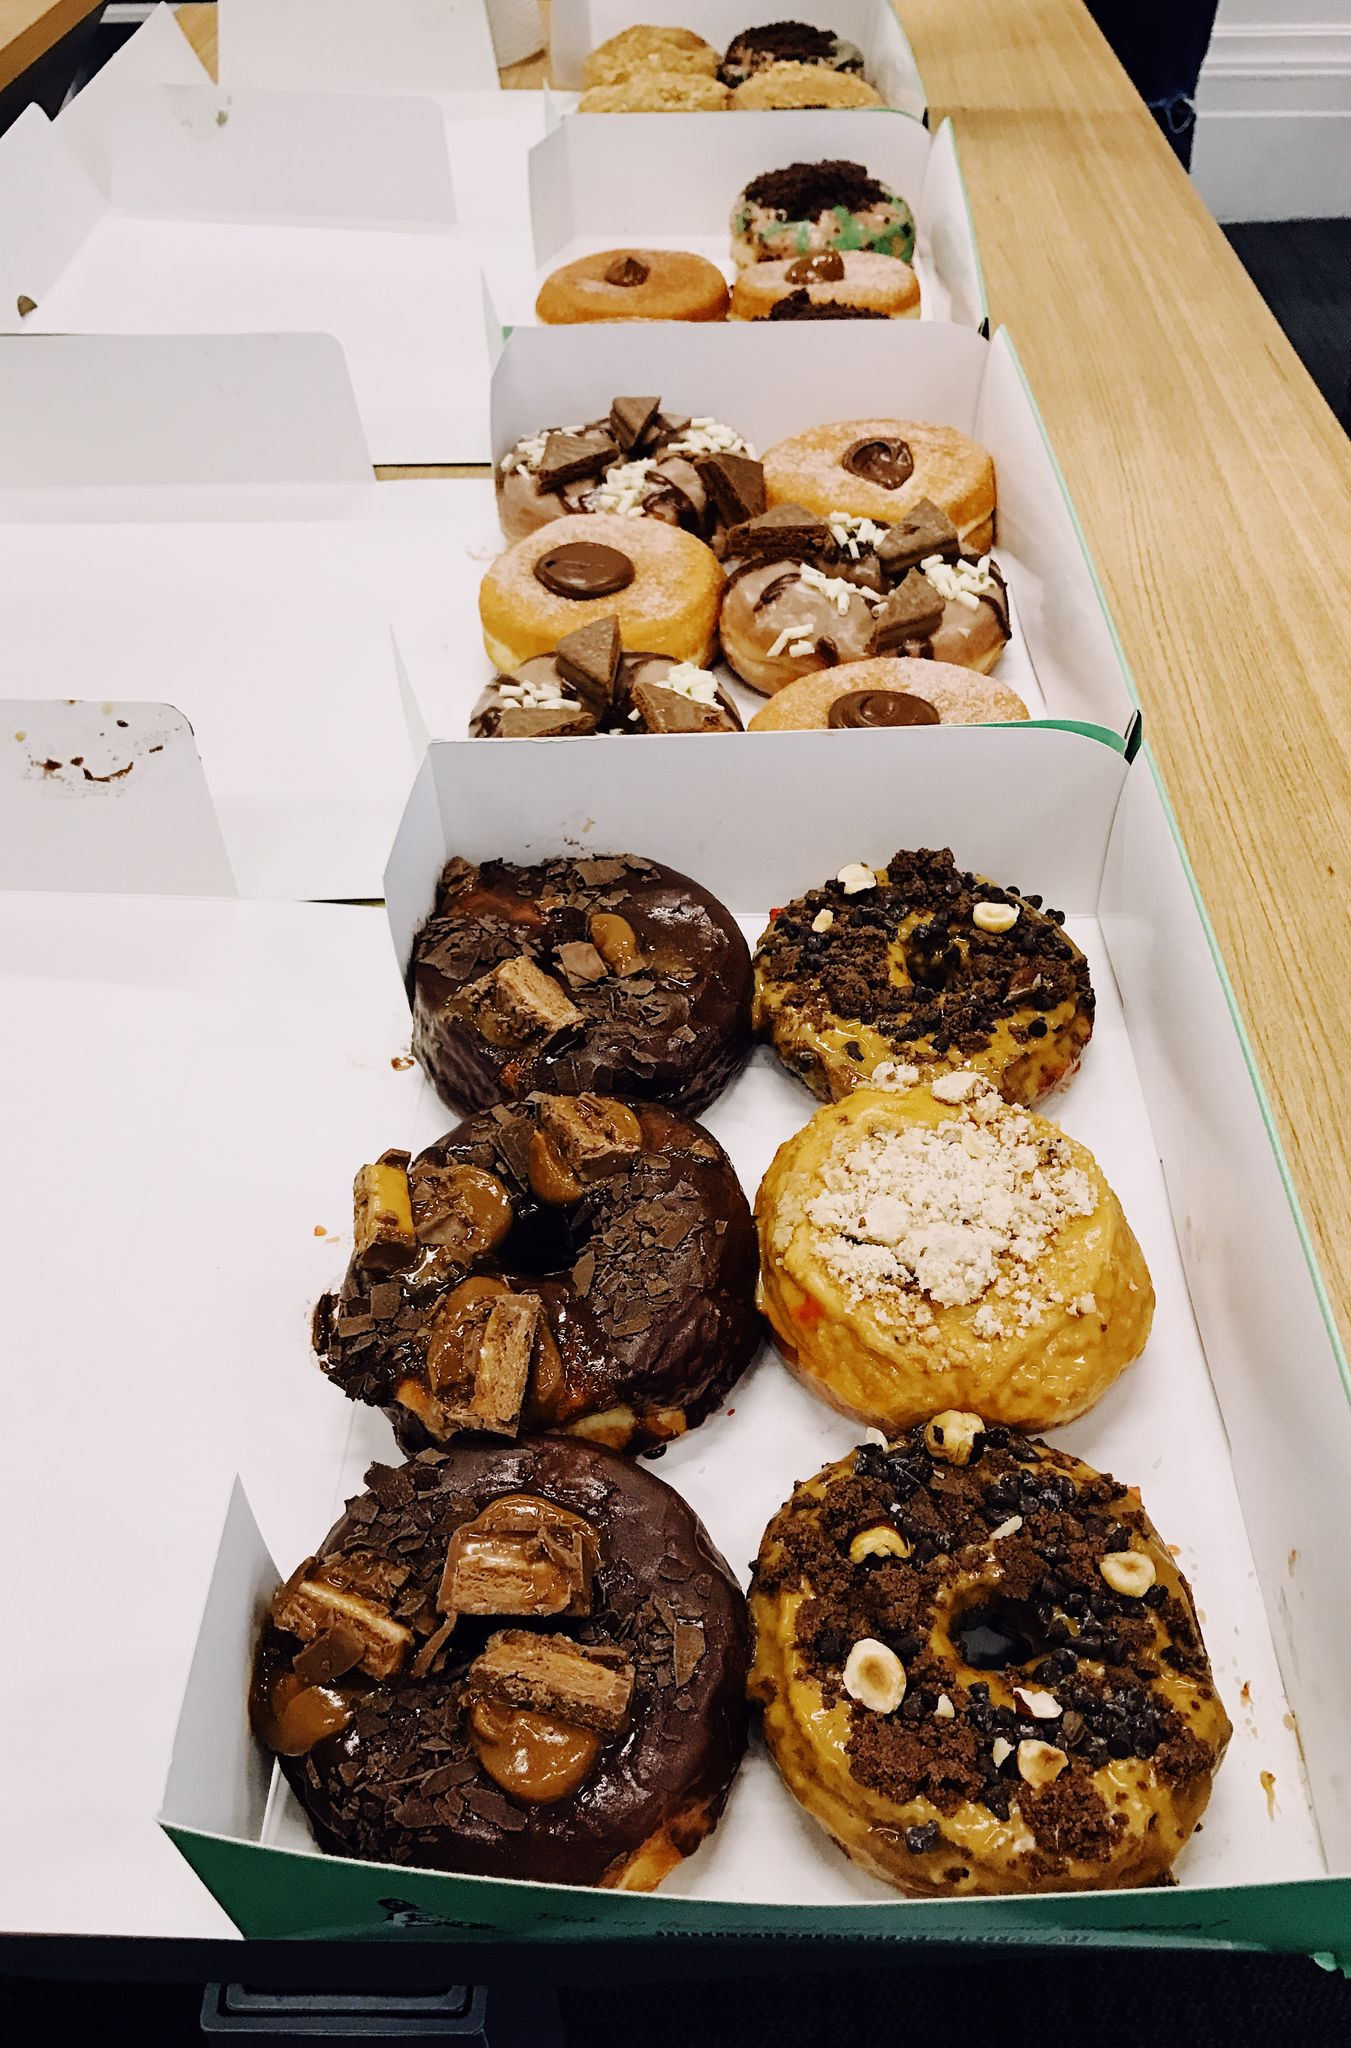 A co-worker hit 10 years here so we're having celebratory doughnuts. \o/